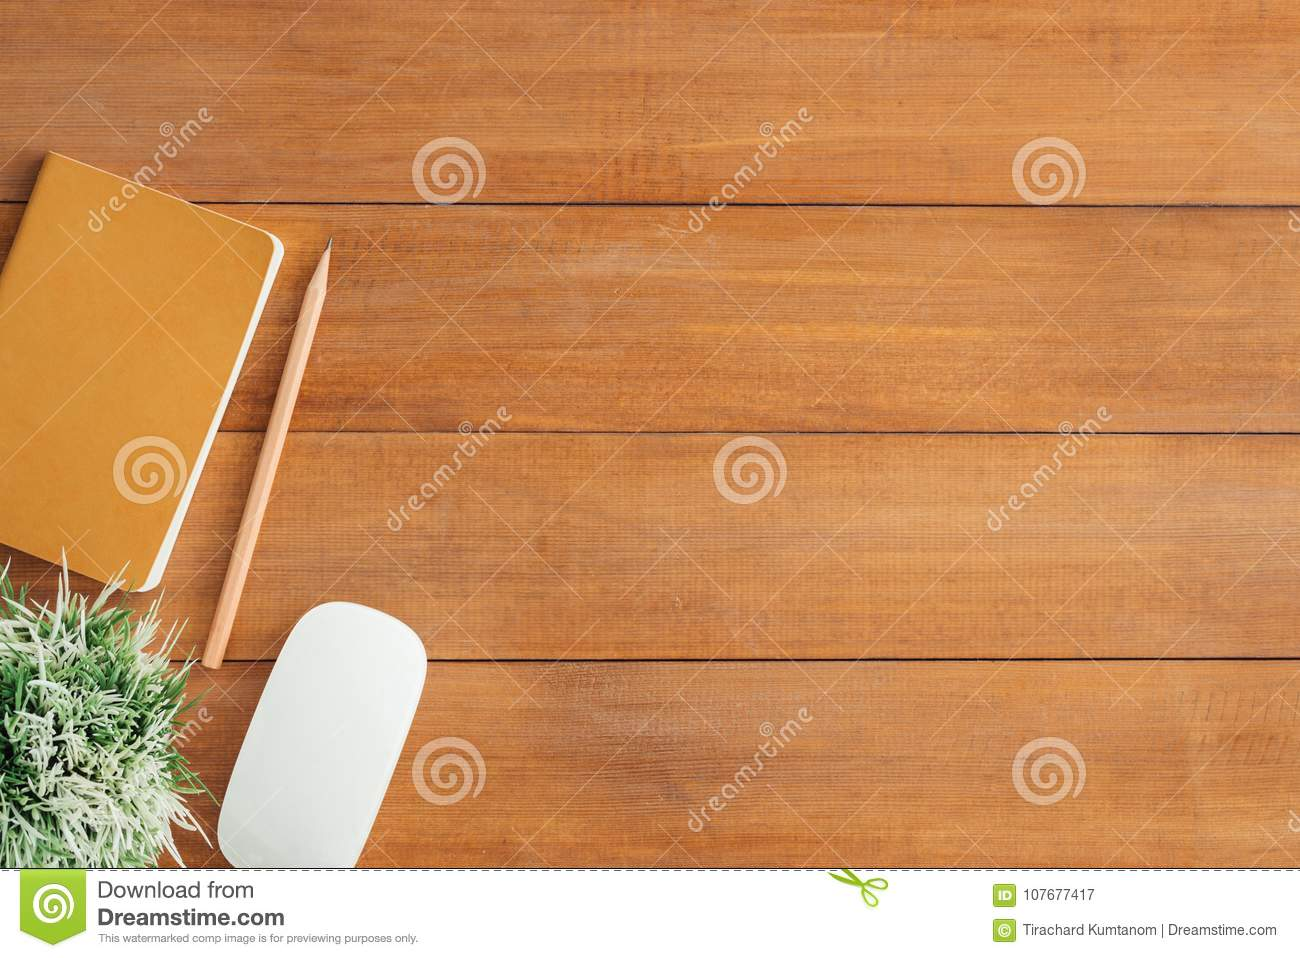 table background green office desk wooden table background with mock up notebooks and pencil plant desk wooden table background with mock up notebooks and